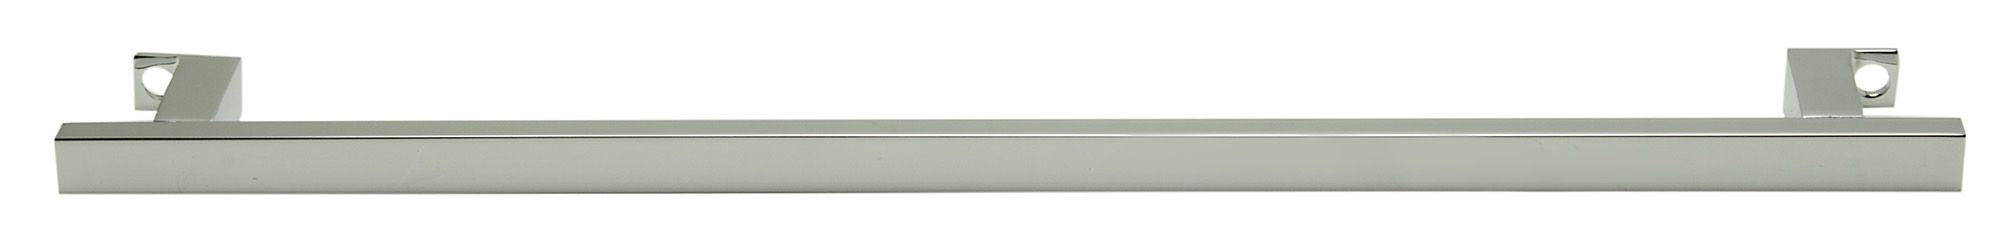 "17"" Chrome Squared Towel Bar Addition To The Ab108 Bathroom Sink Basin"